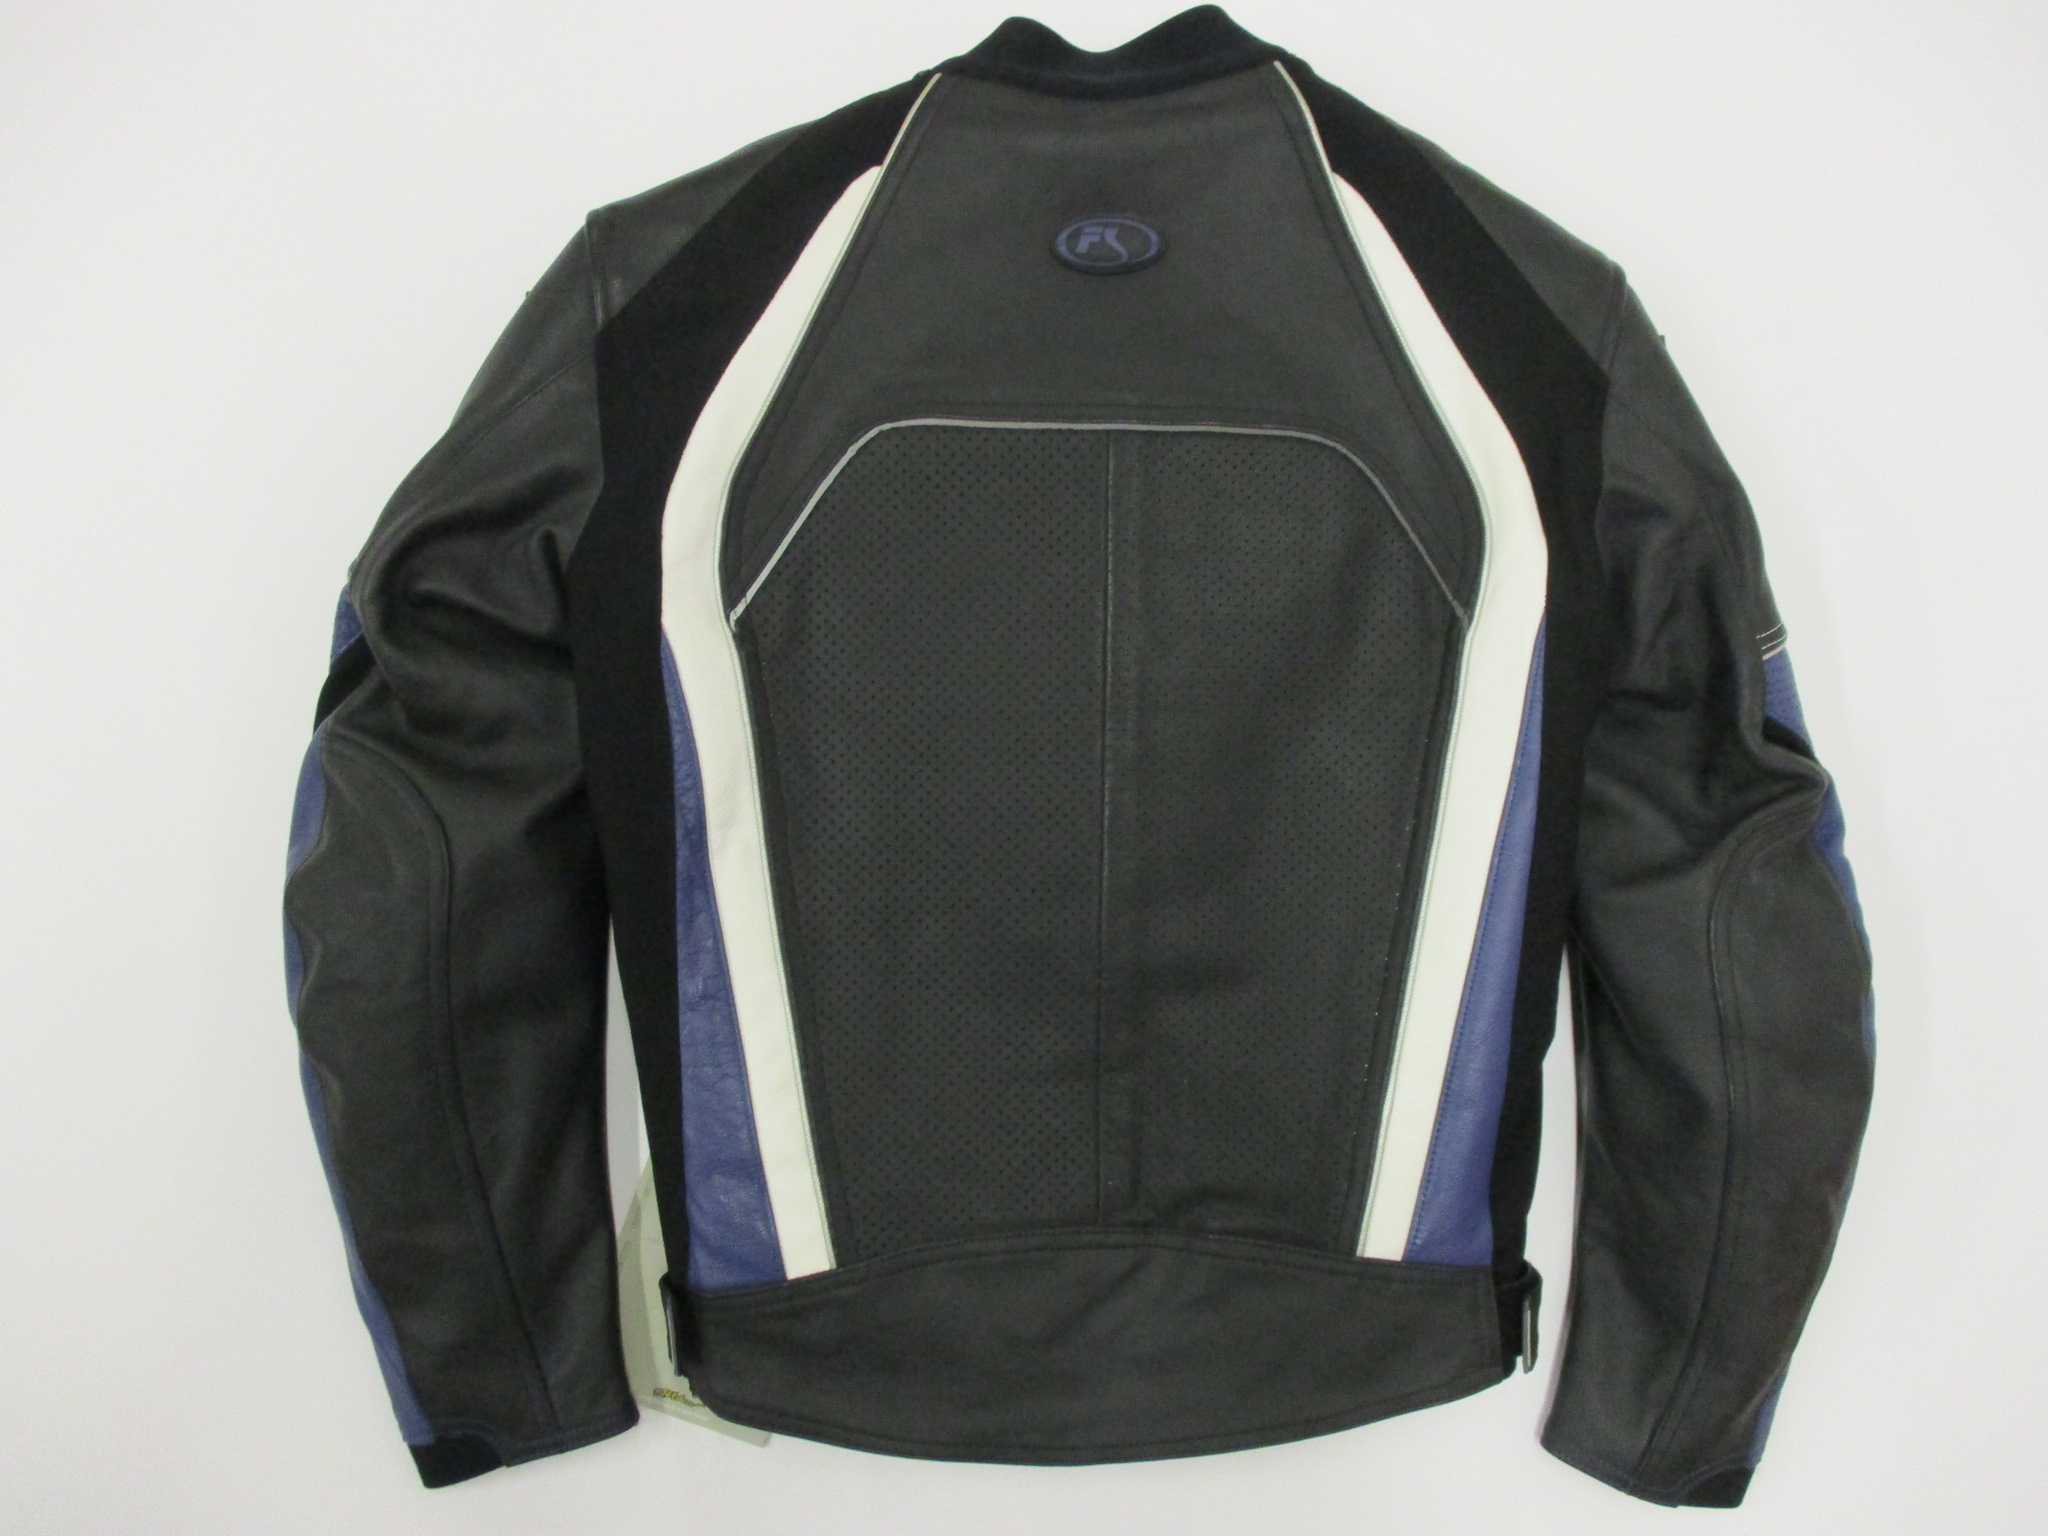 Fieldsheer Razor Leather Motorcycle Jacket Black Blue Size